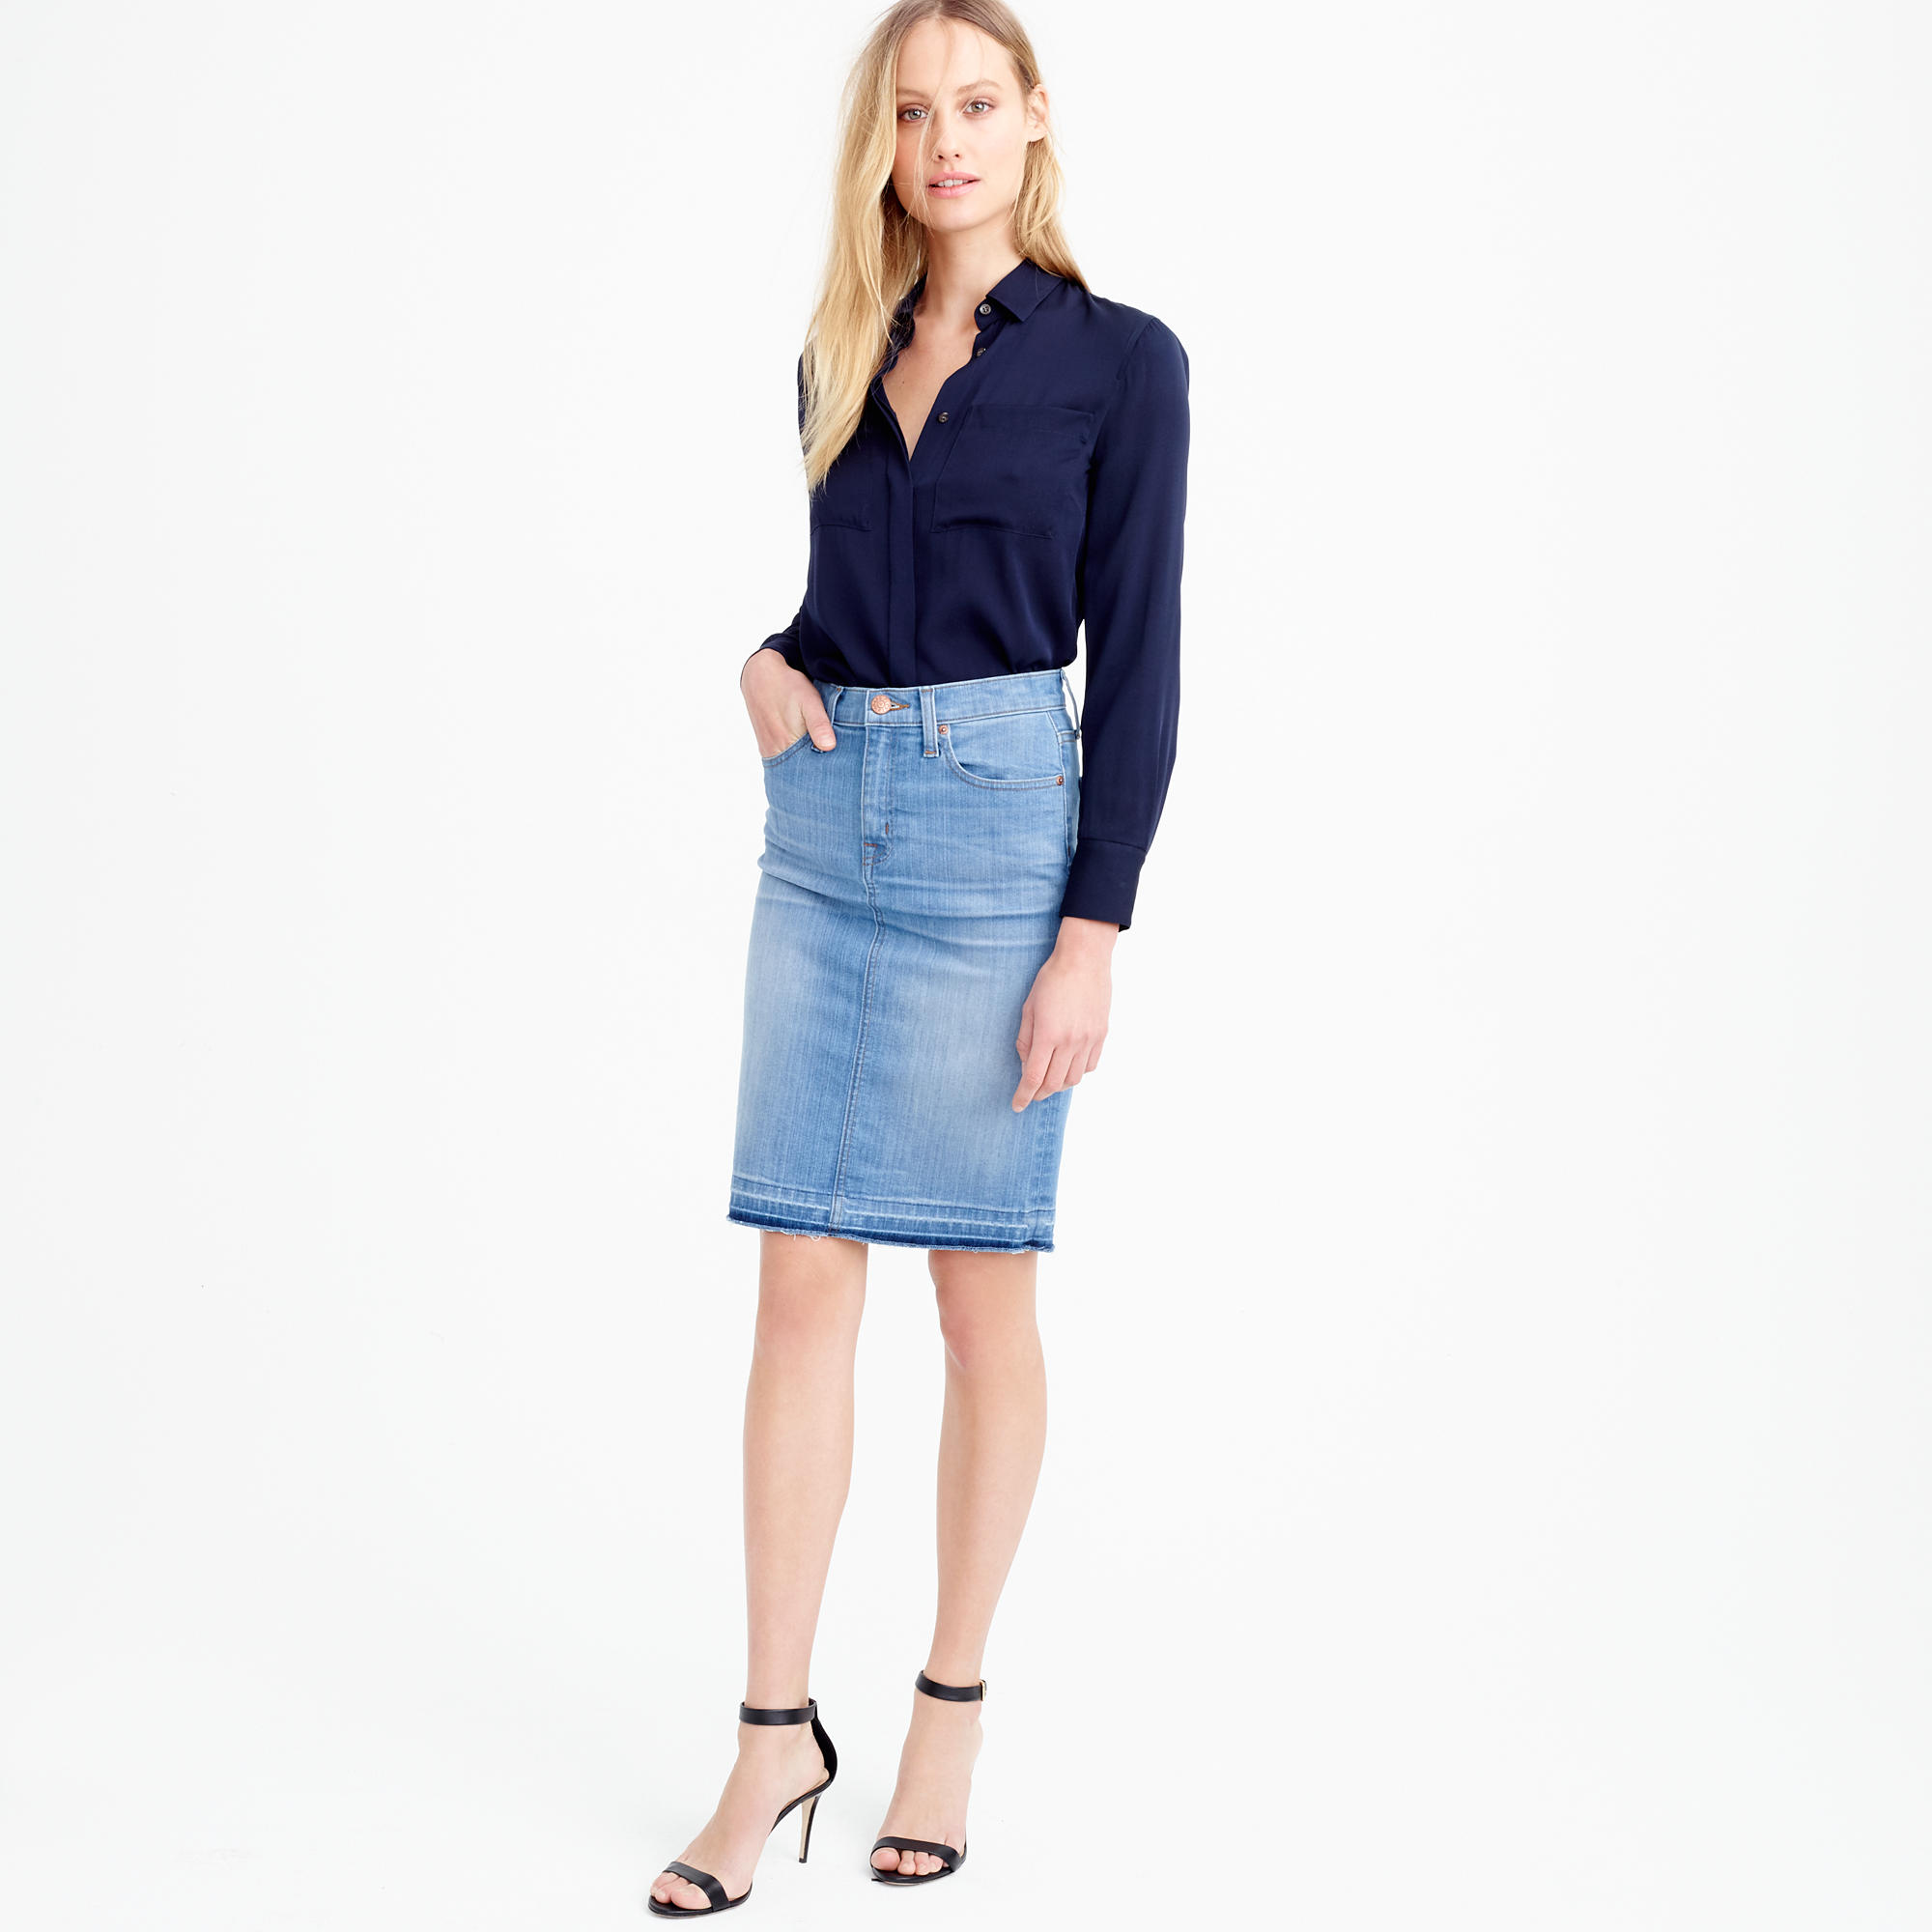 Tie-back denim skirt : Women denim | J.Crew